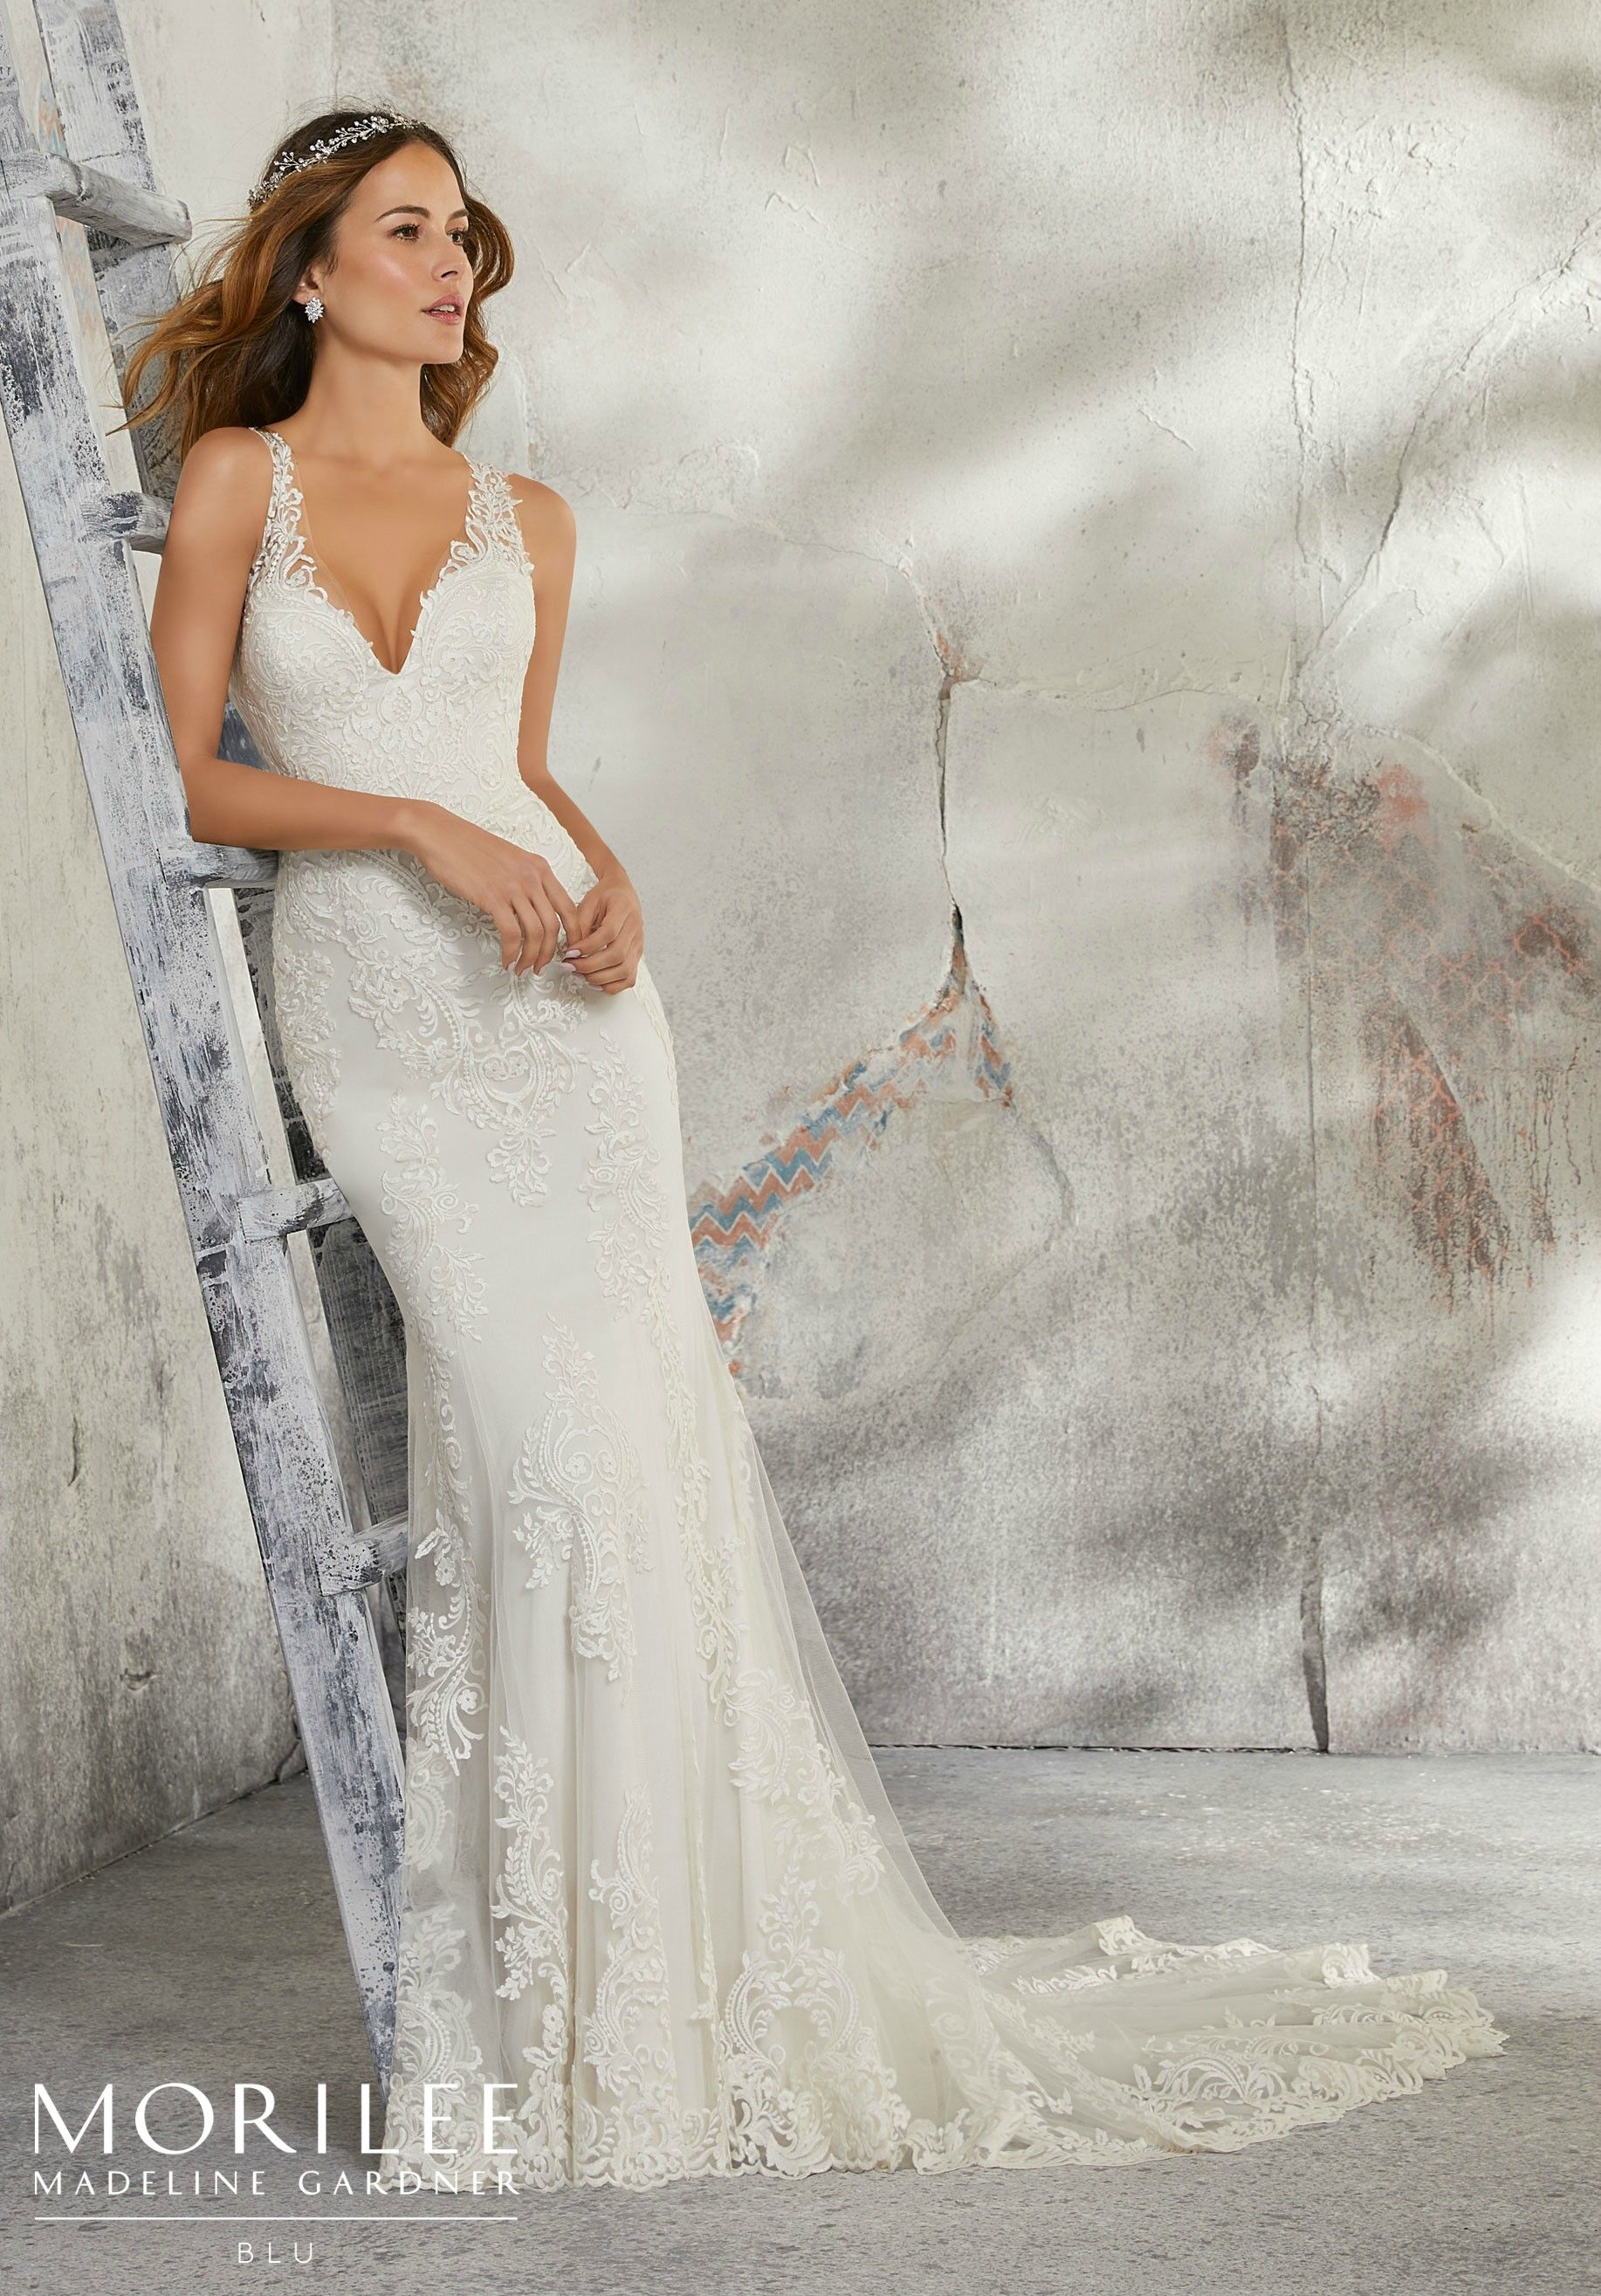 Mori lee madeline gardner wedding dress  Leia Wedding Dress  Blu Fall u  Morilee by Madeline Gardner